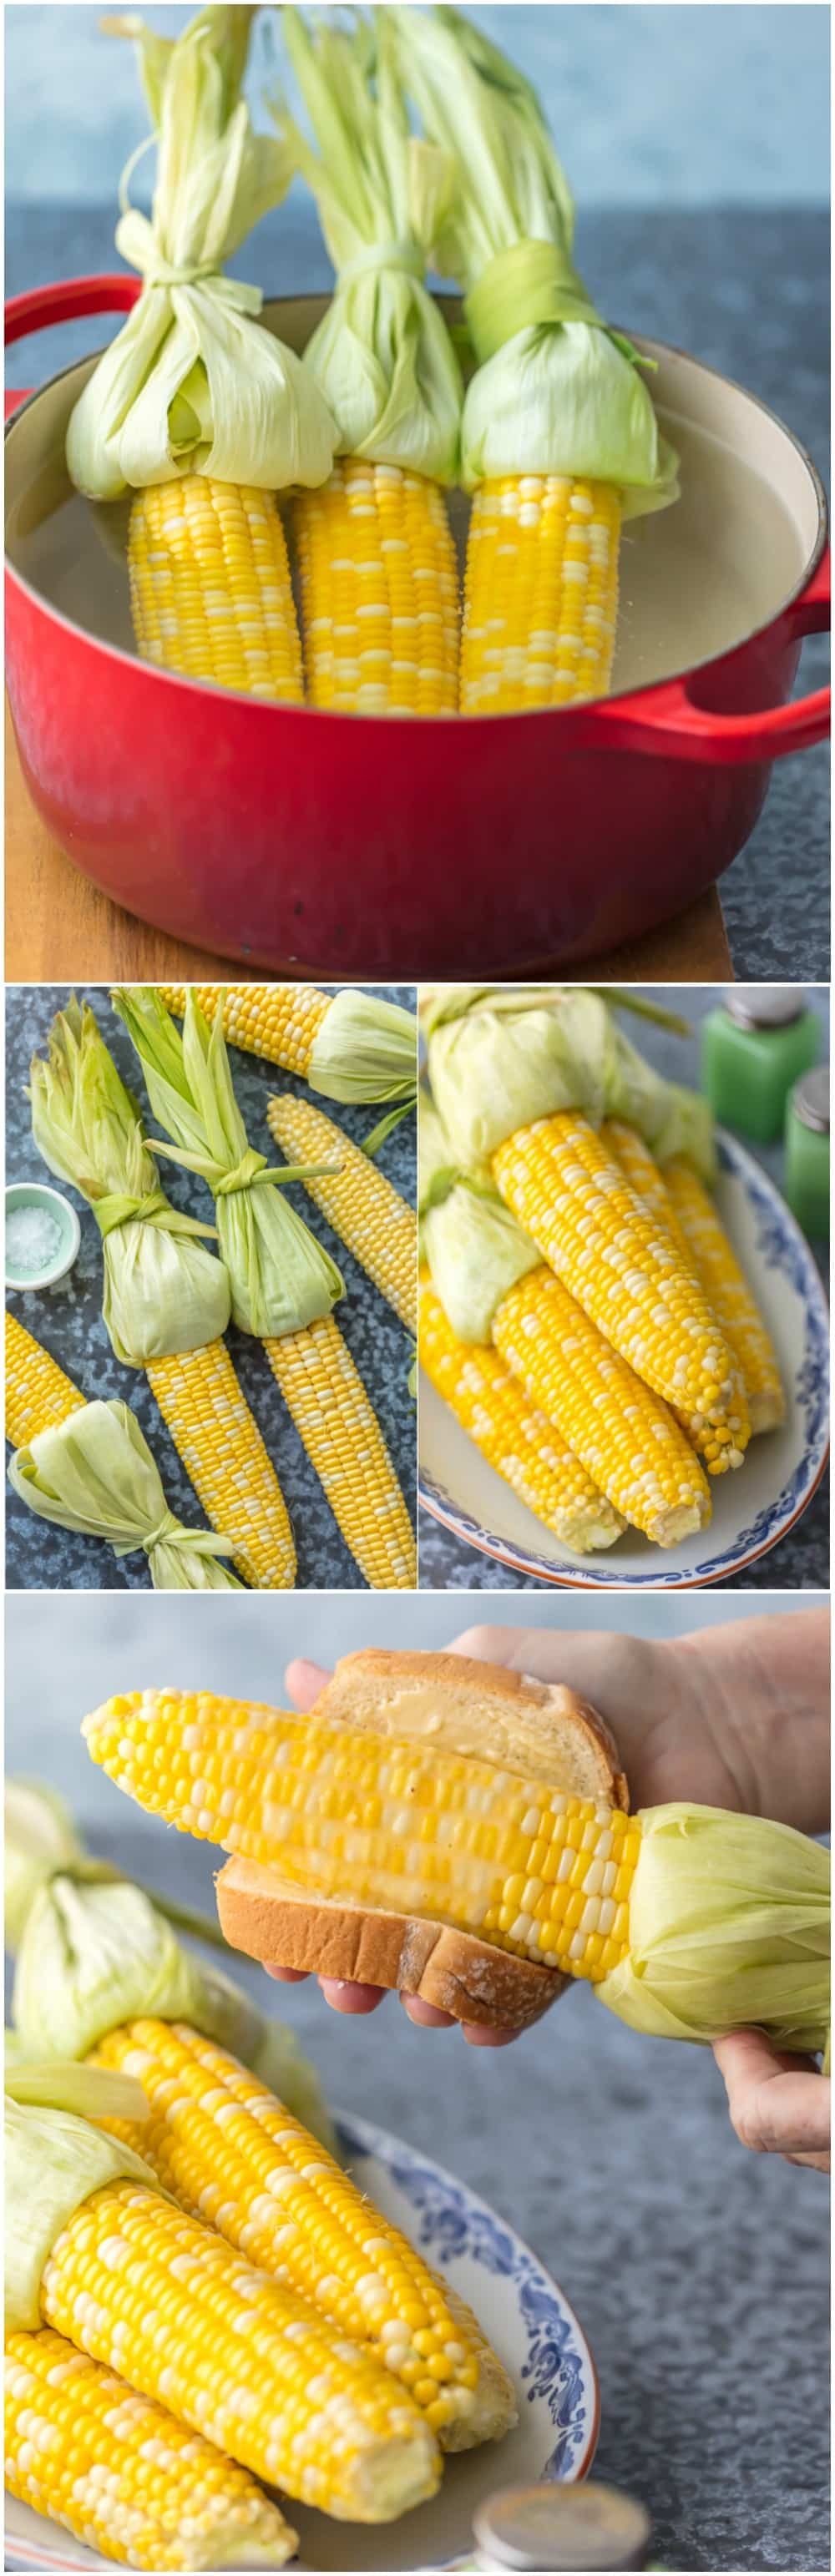 Have you wondered HOW TO COOK CORN ON THE COB? It's never been easier. A few secret tricks to making the most delicious sweet corn every Summer!